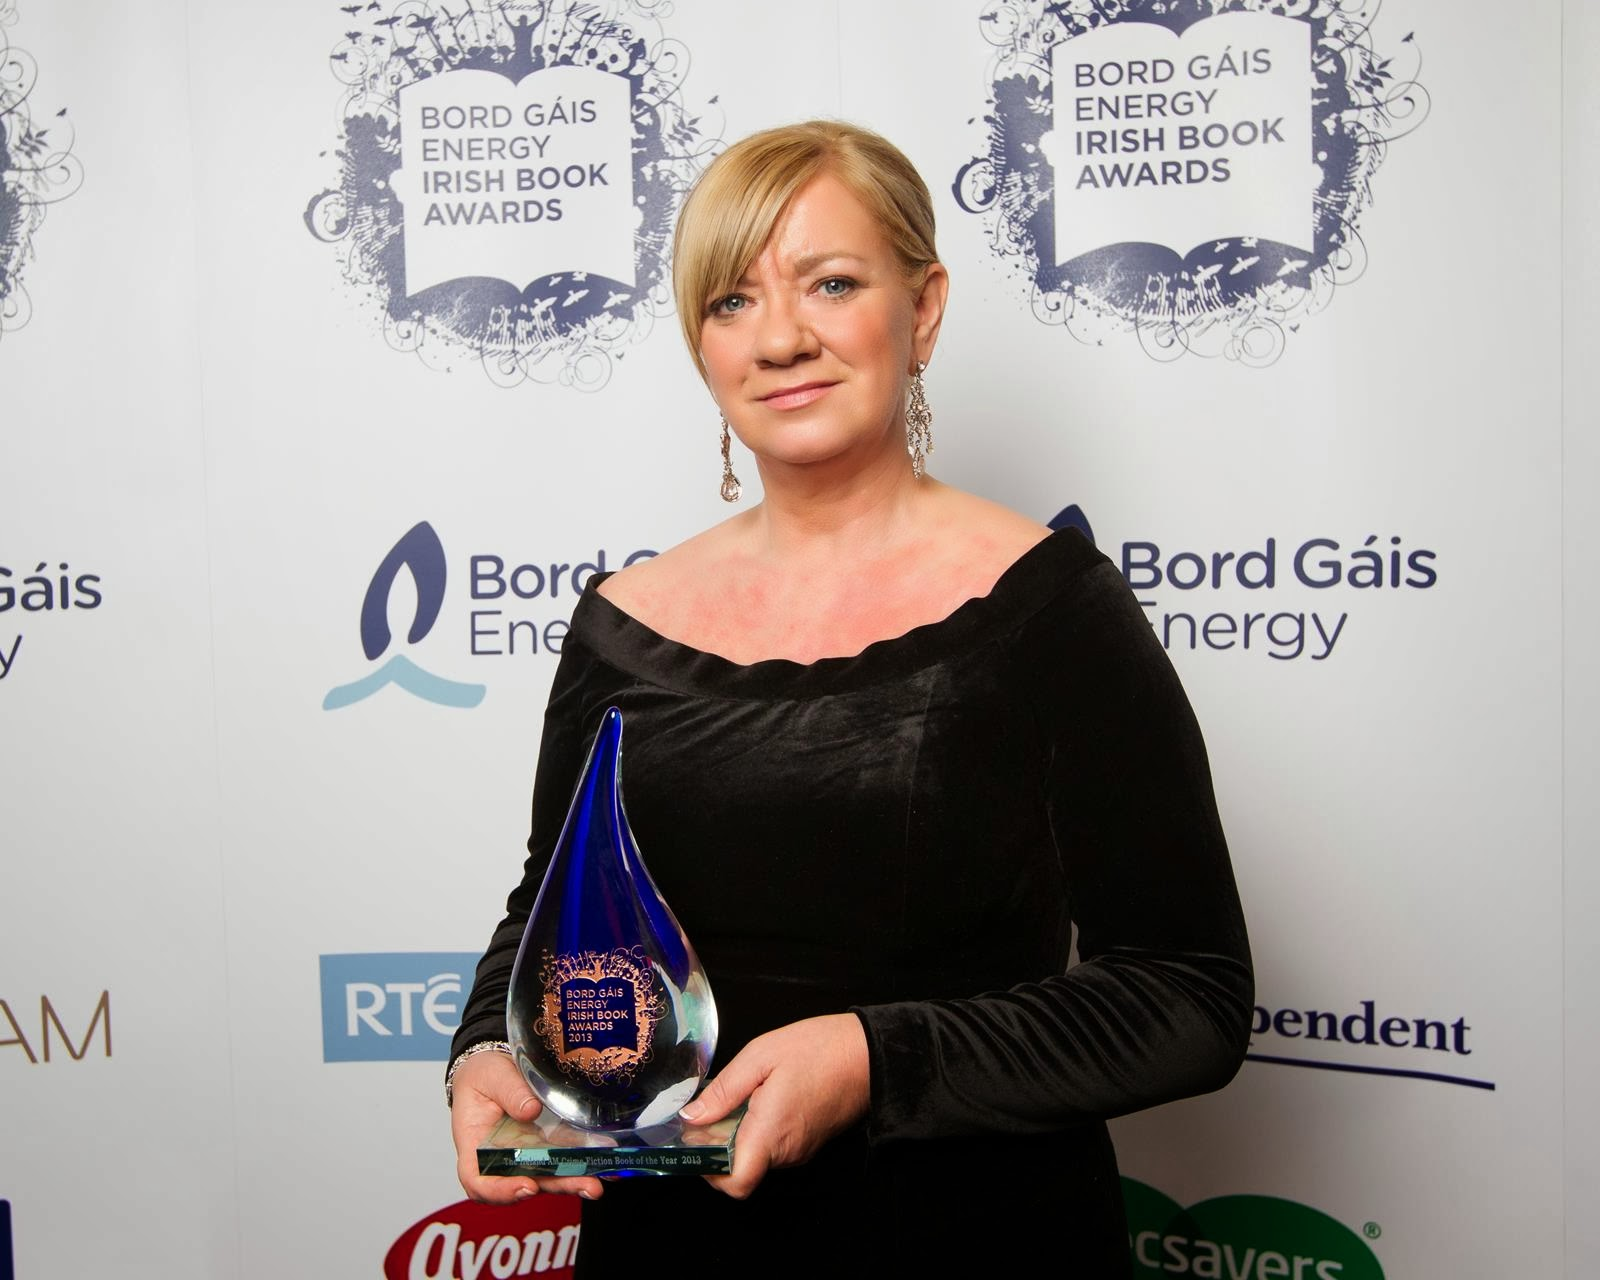 Irish Book Awards 2013